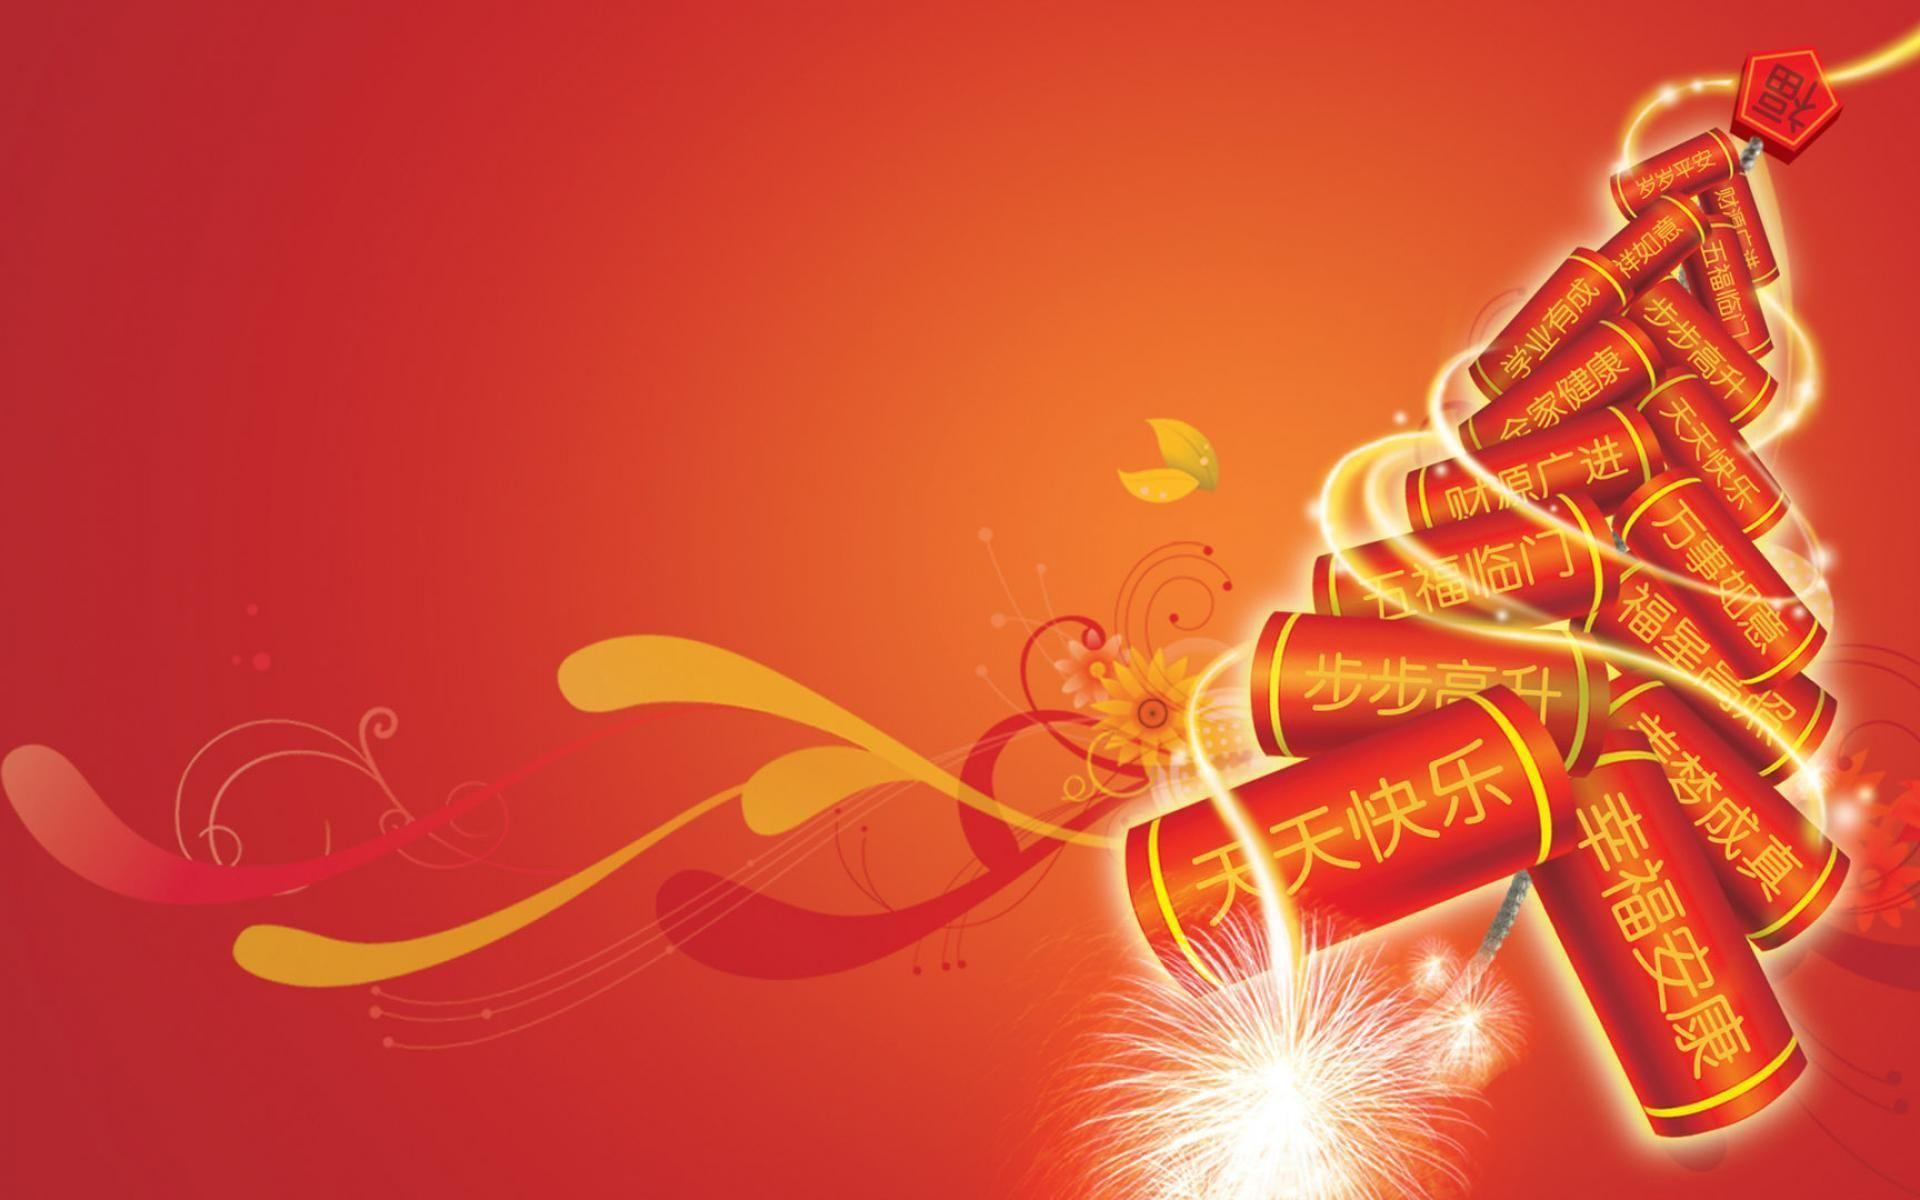 Chinese Festival Wallpapers - Top Free Chinese Festival